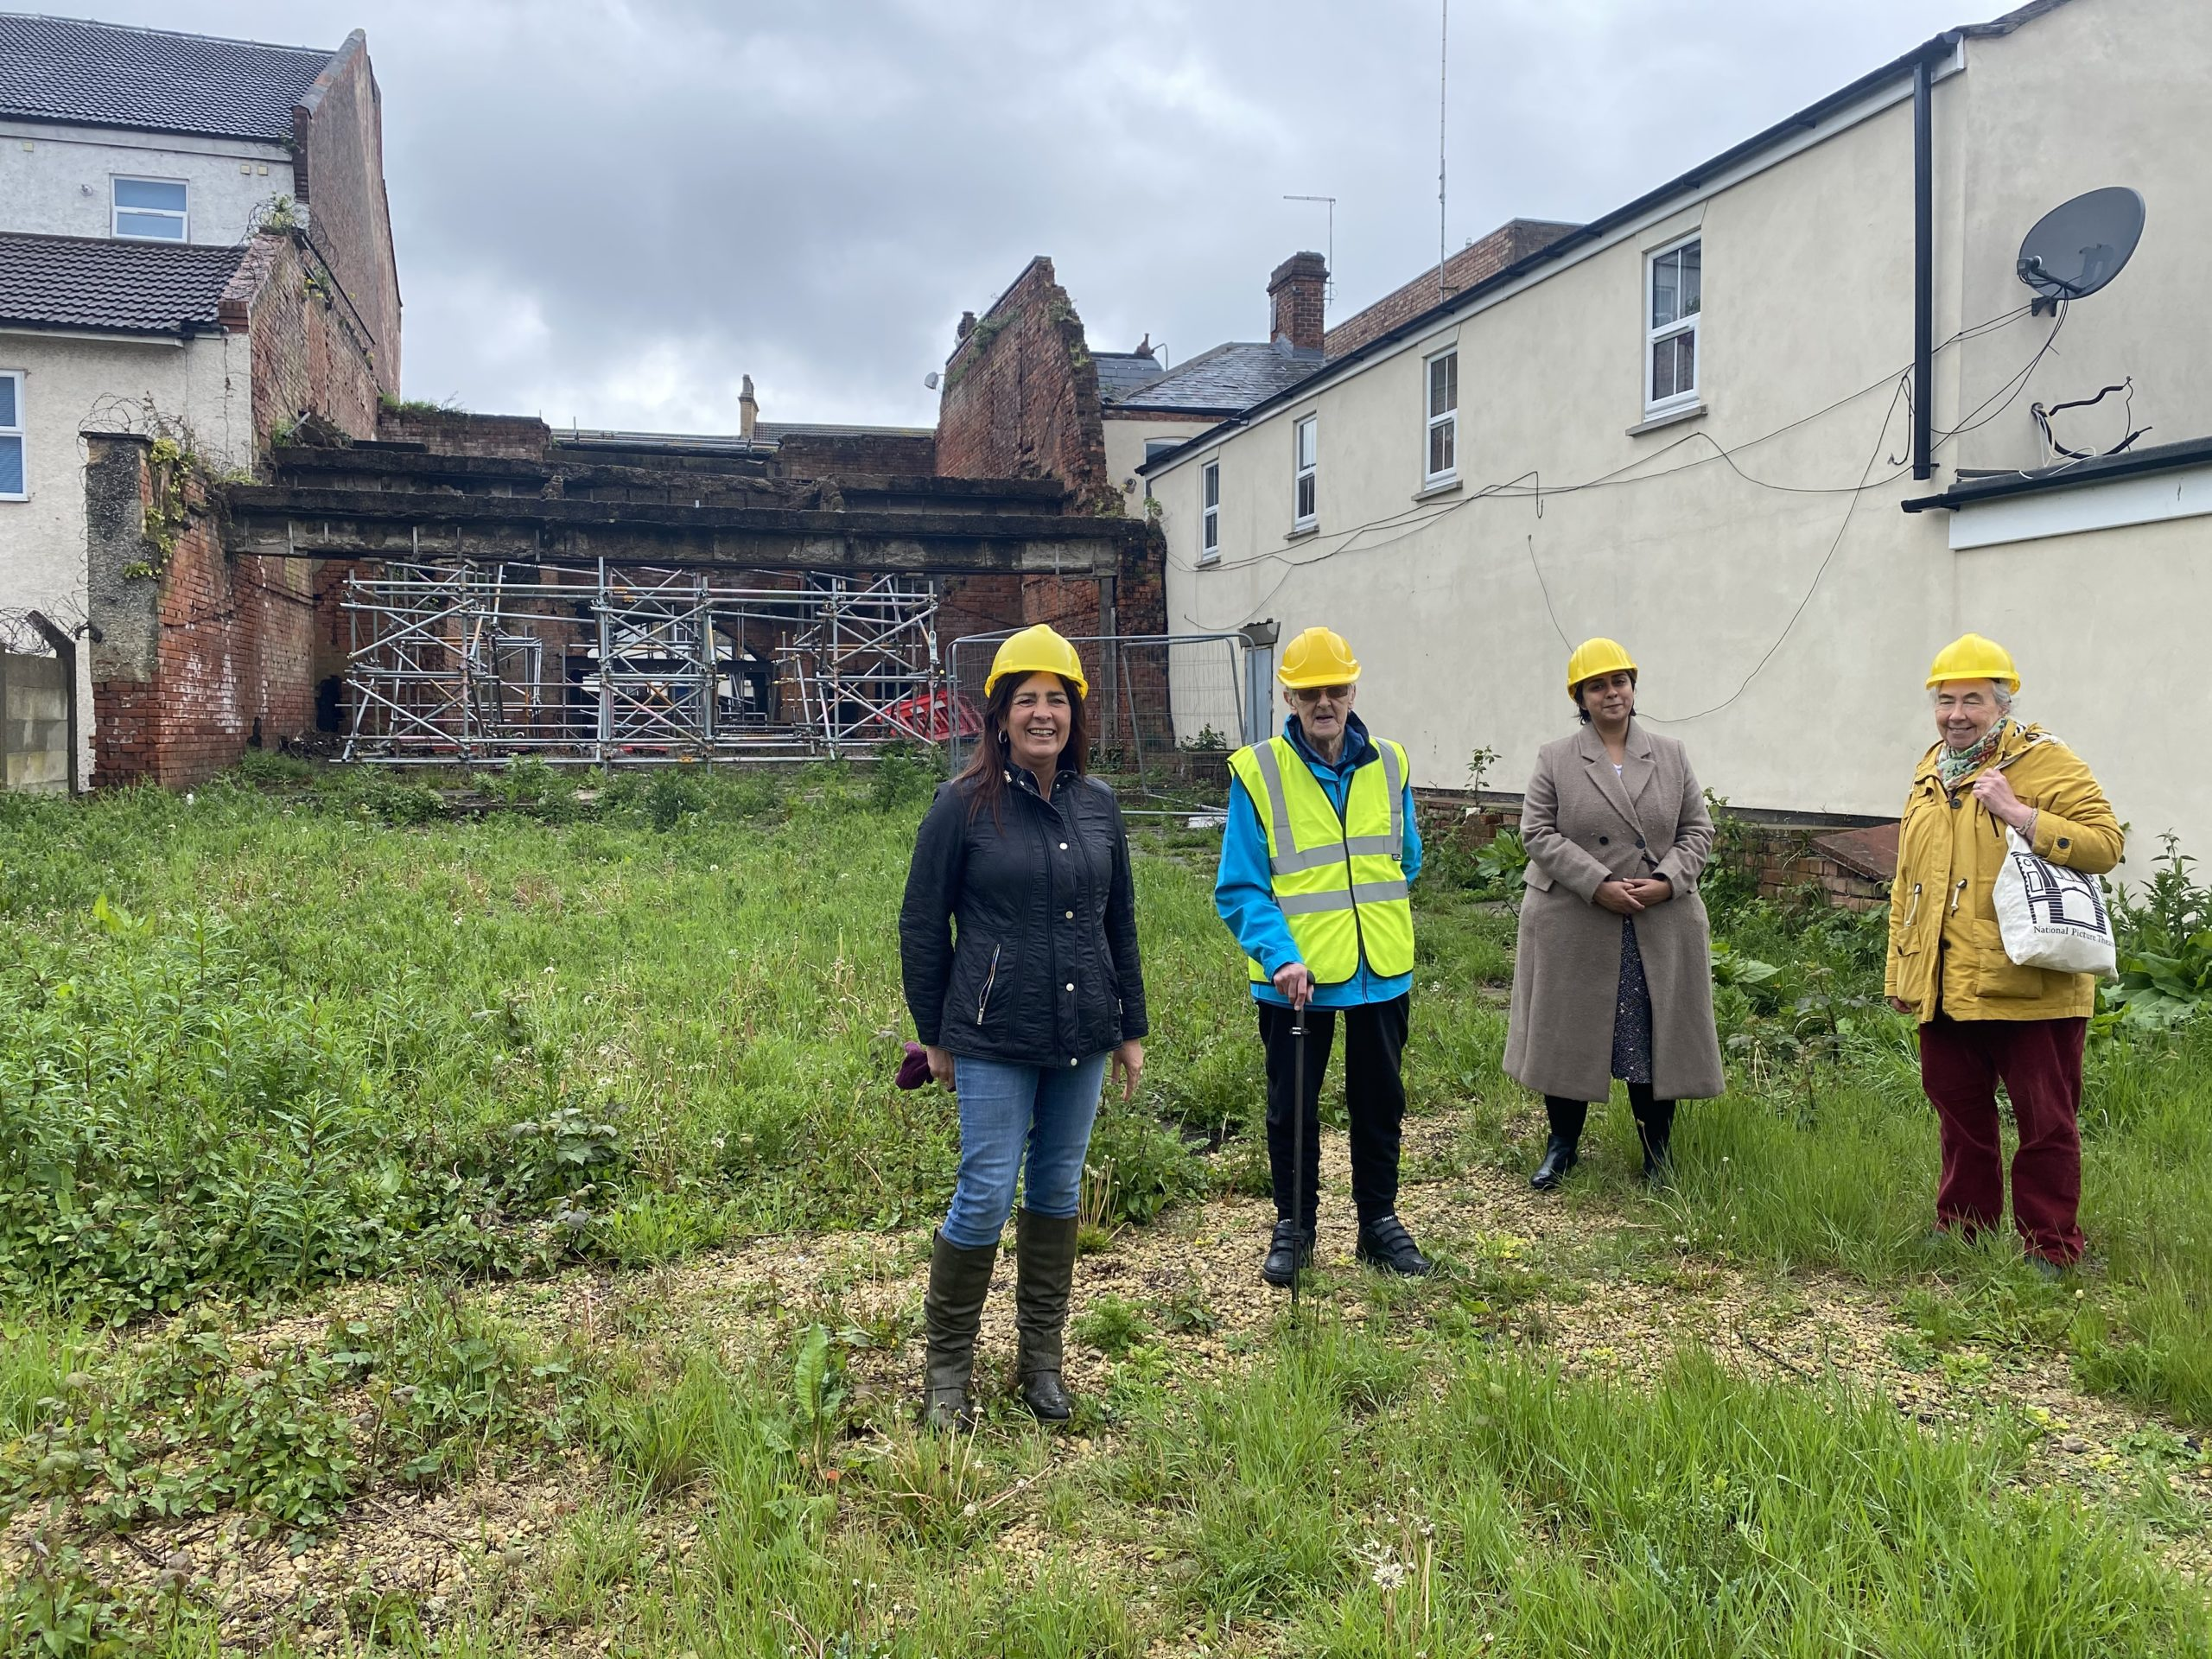 Members of the National Picture Theatre project team can now prepare to start work on site.